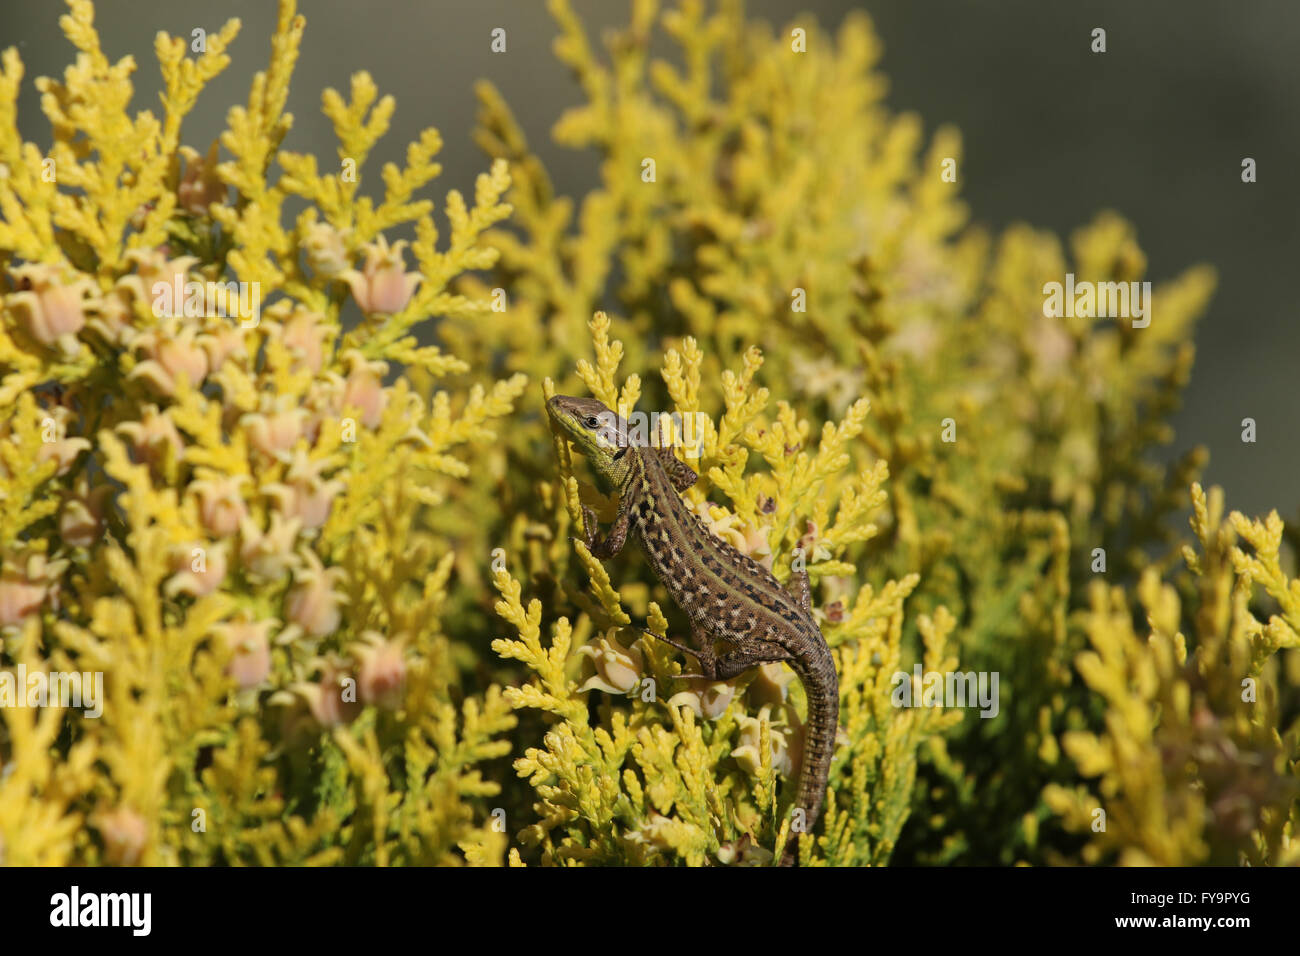 Italian wall lizard climbing a thuya bush podarcis sicula lucertola Stock Photo